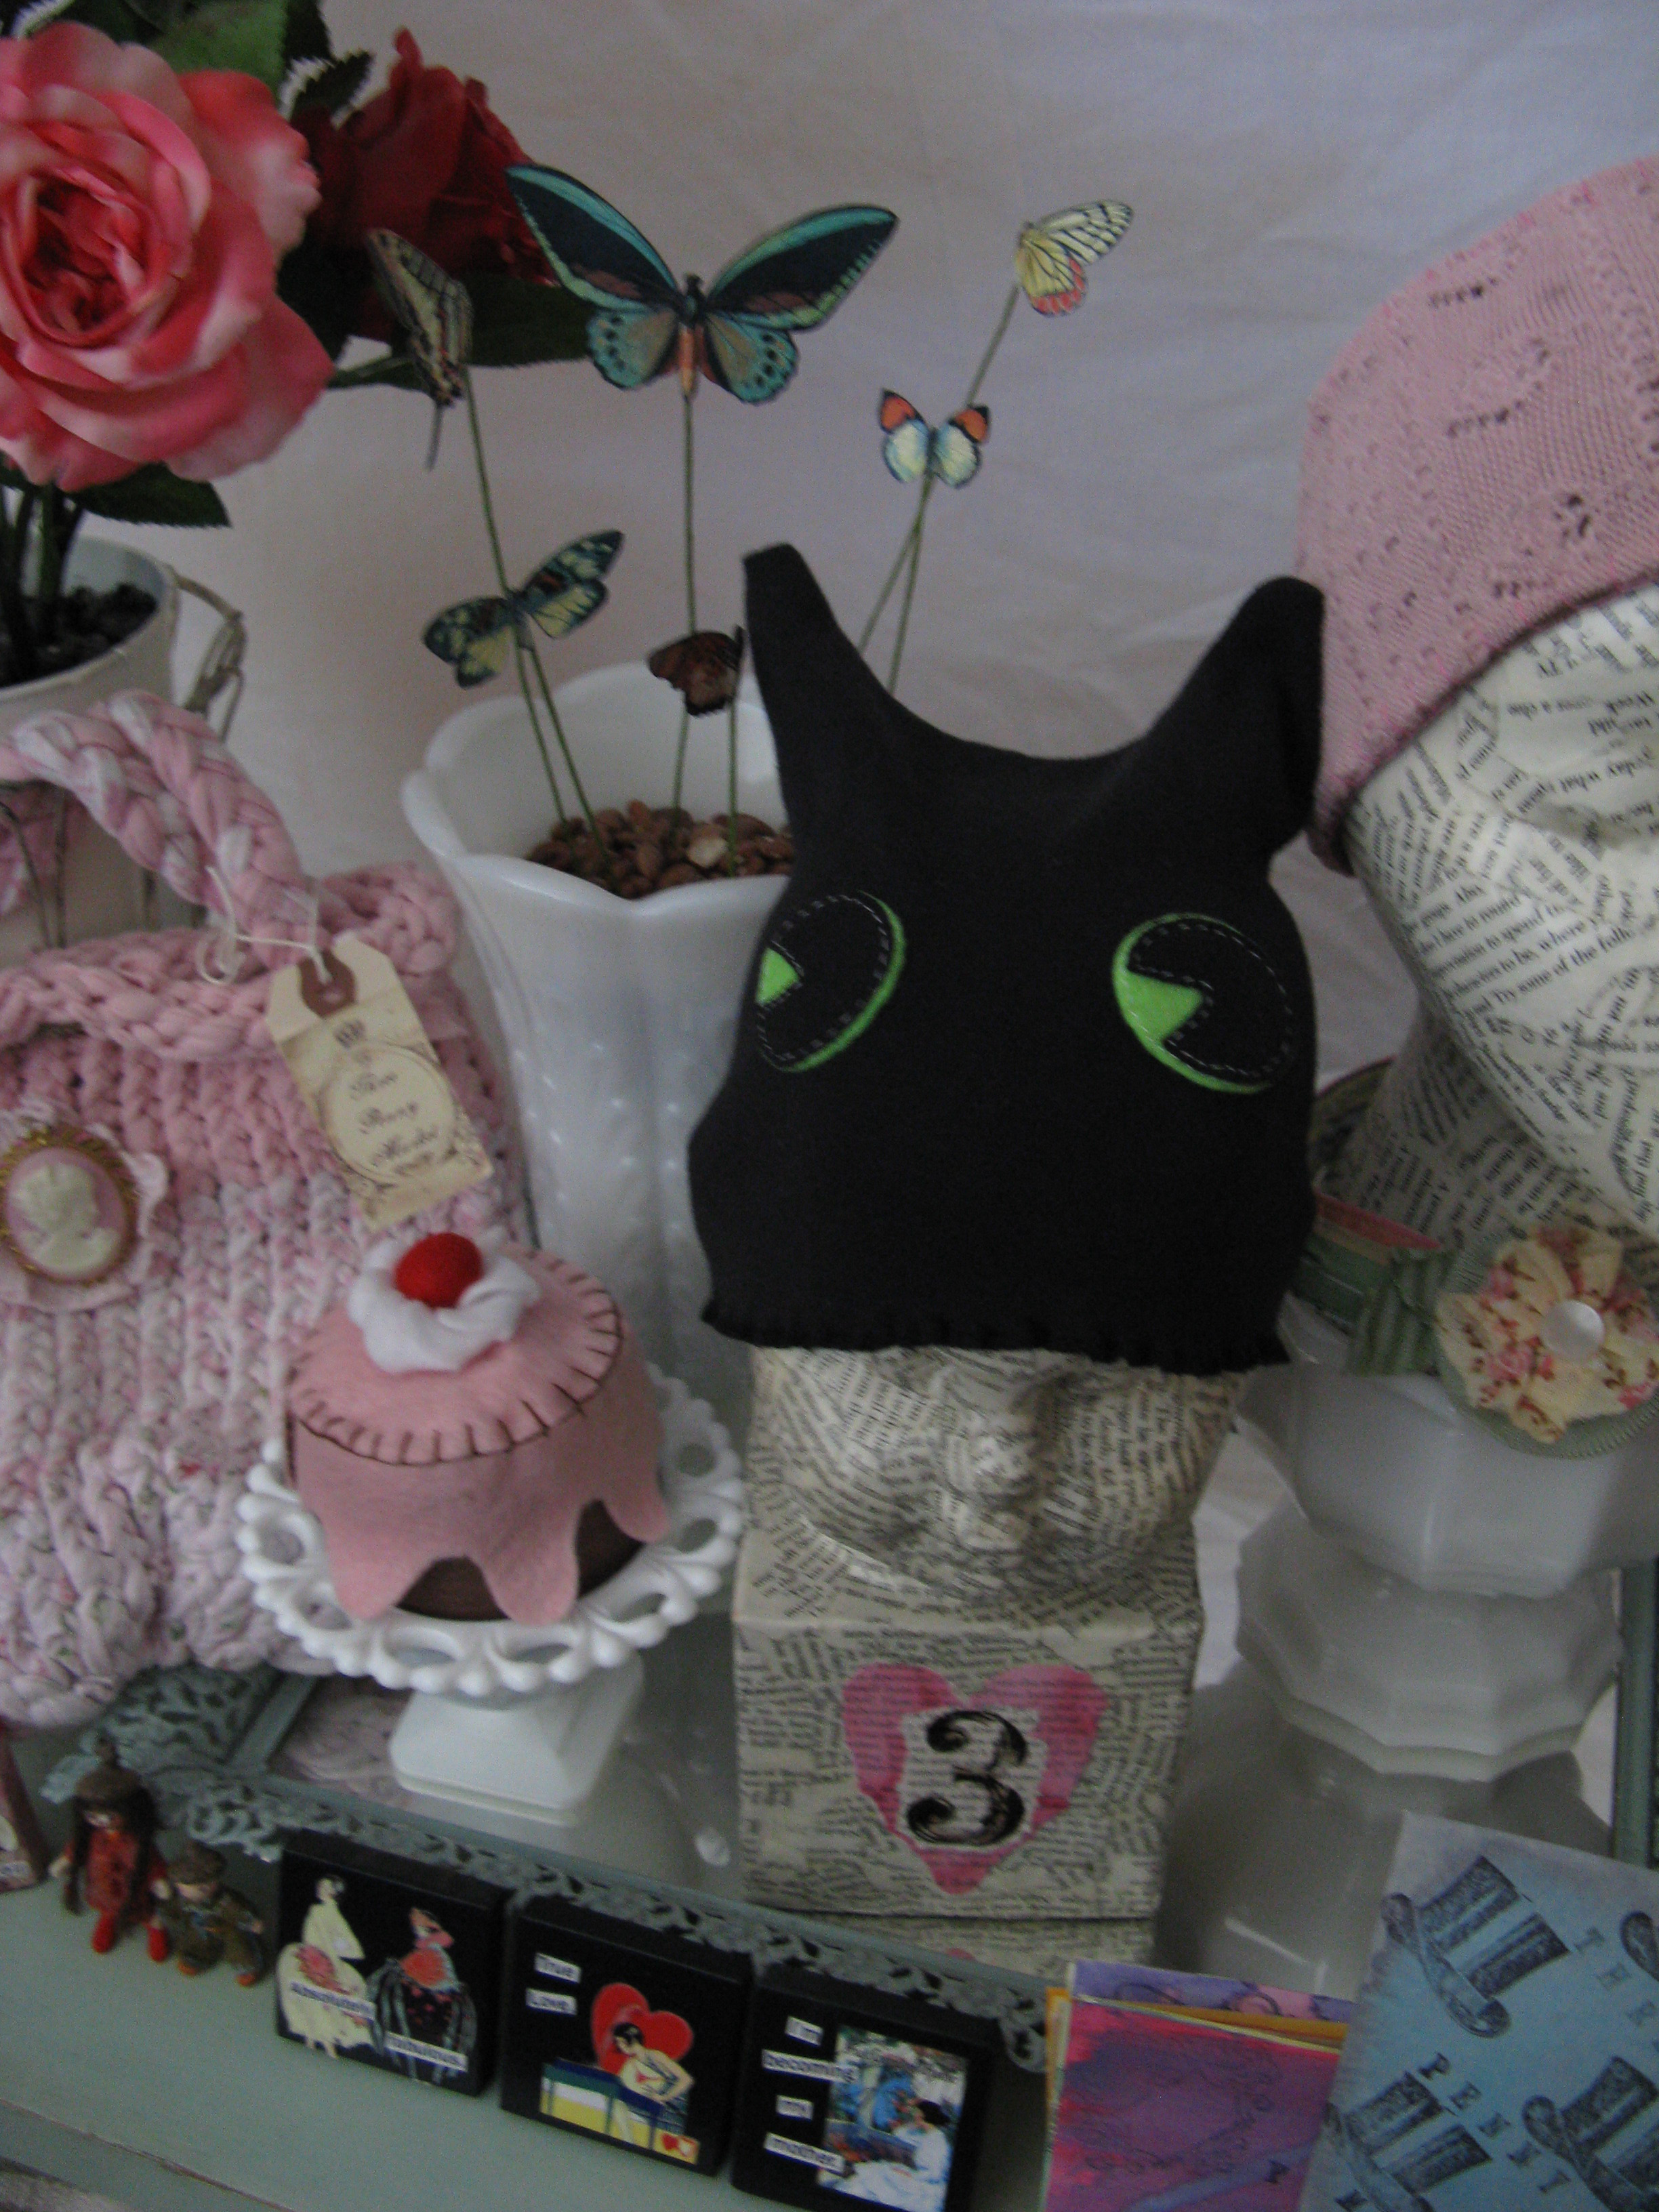 Kitty baby hat and felt cake detail